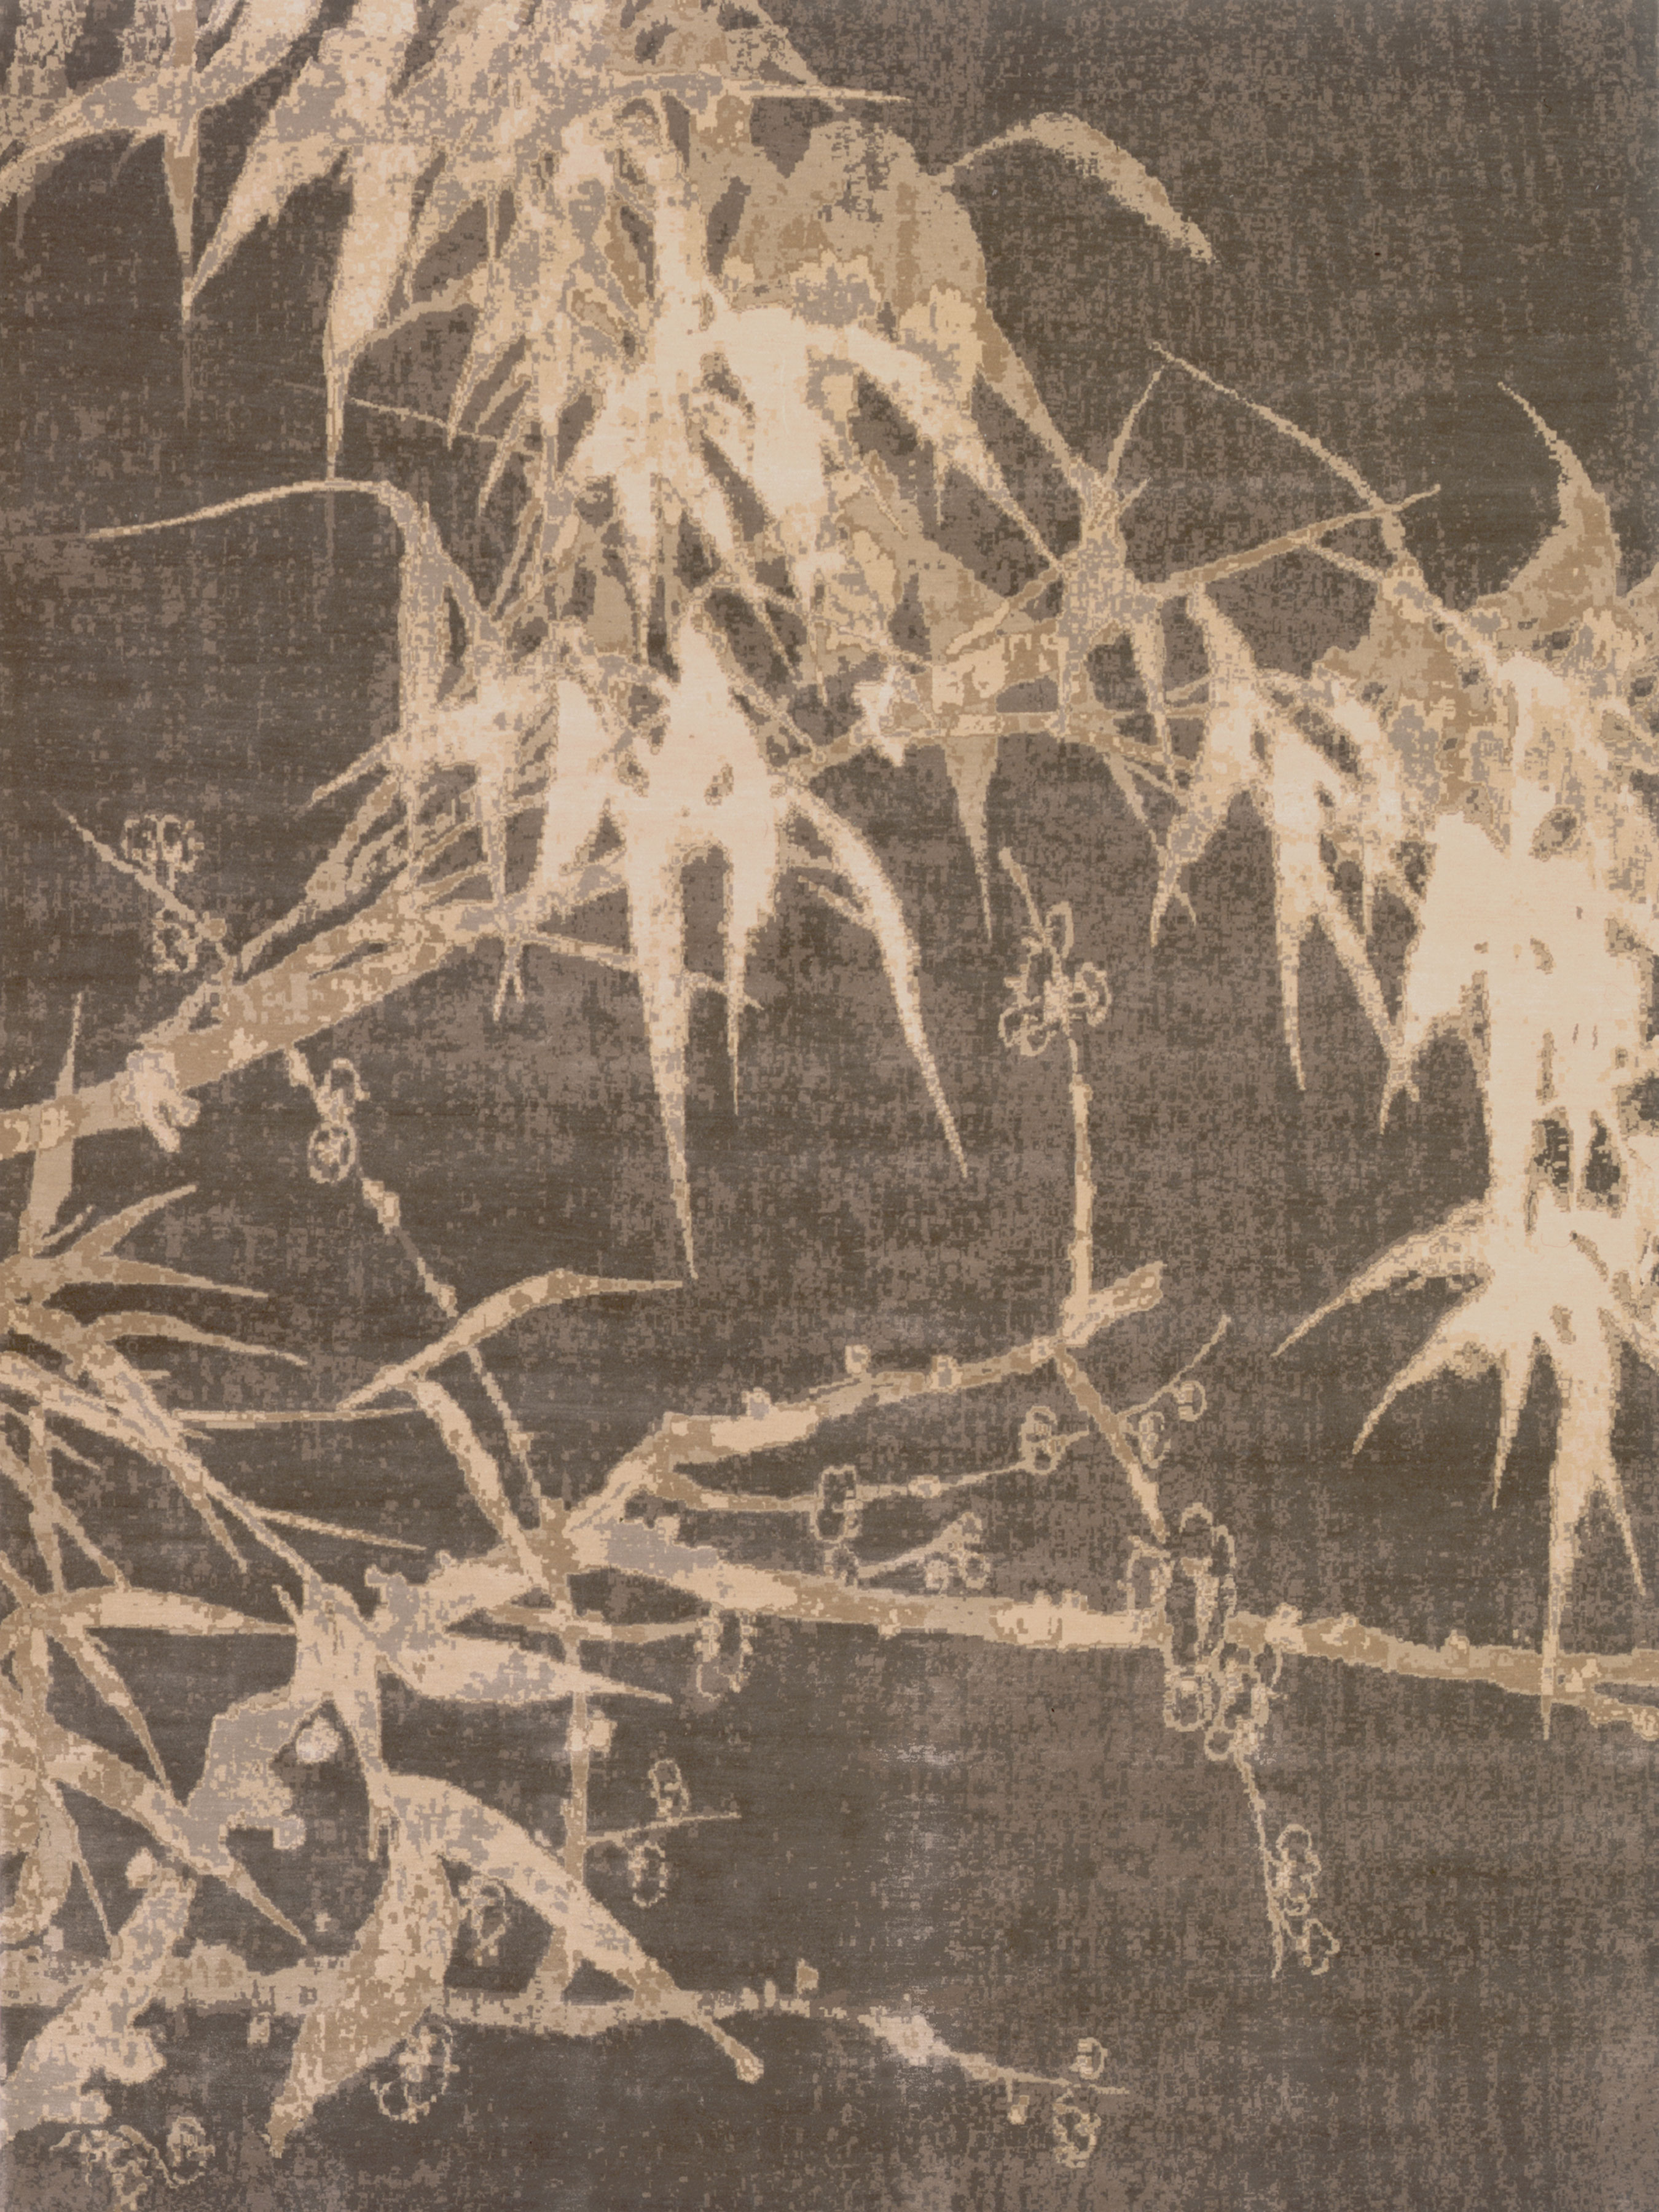 Chinese Painting Reverse